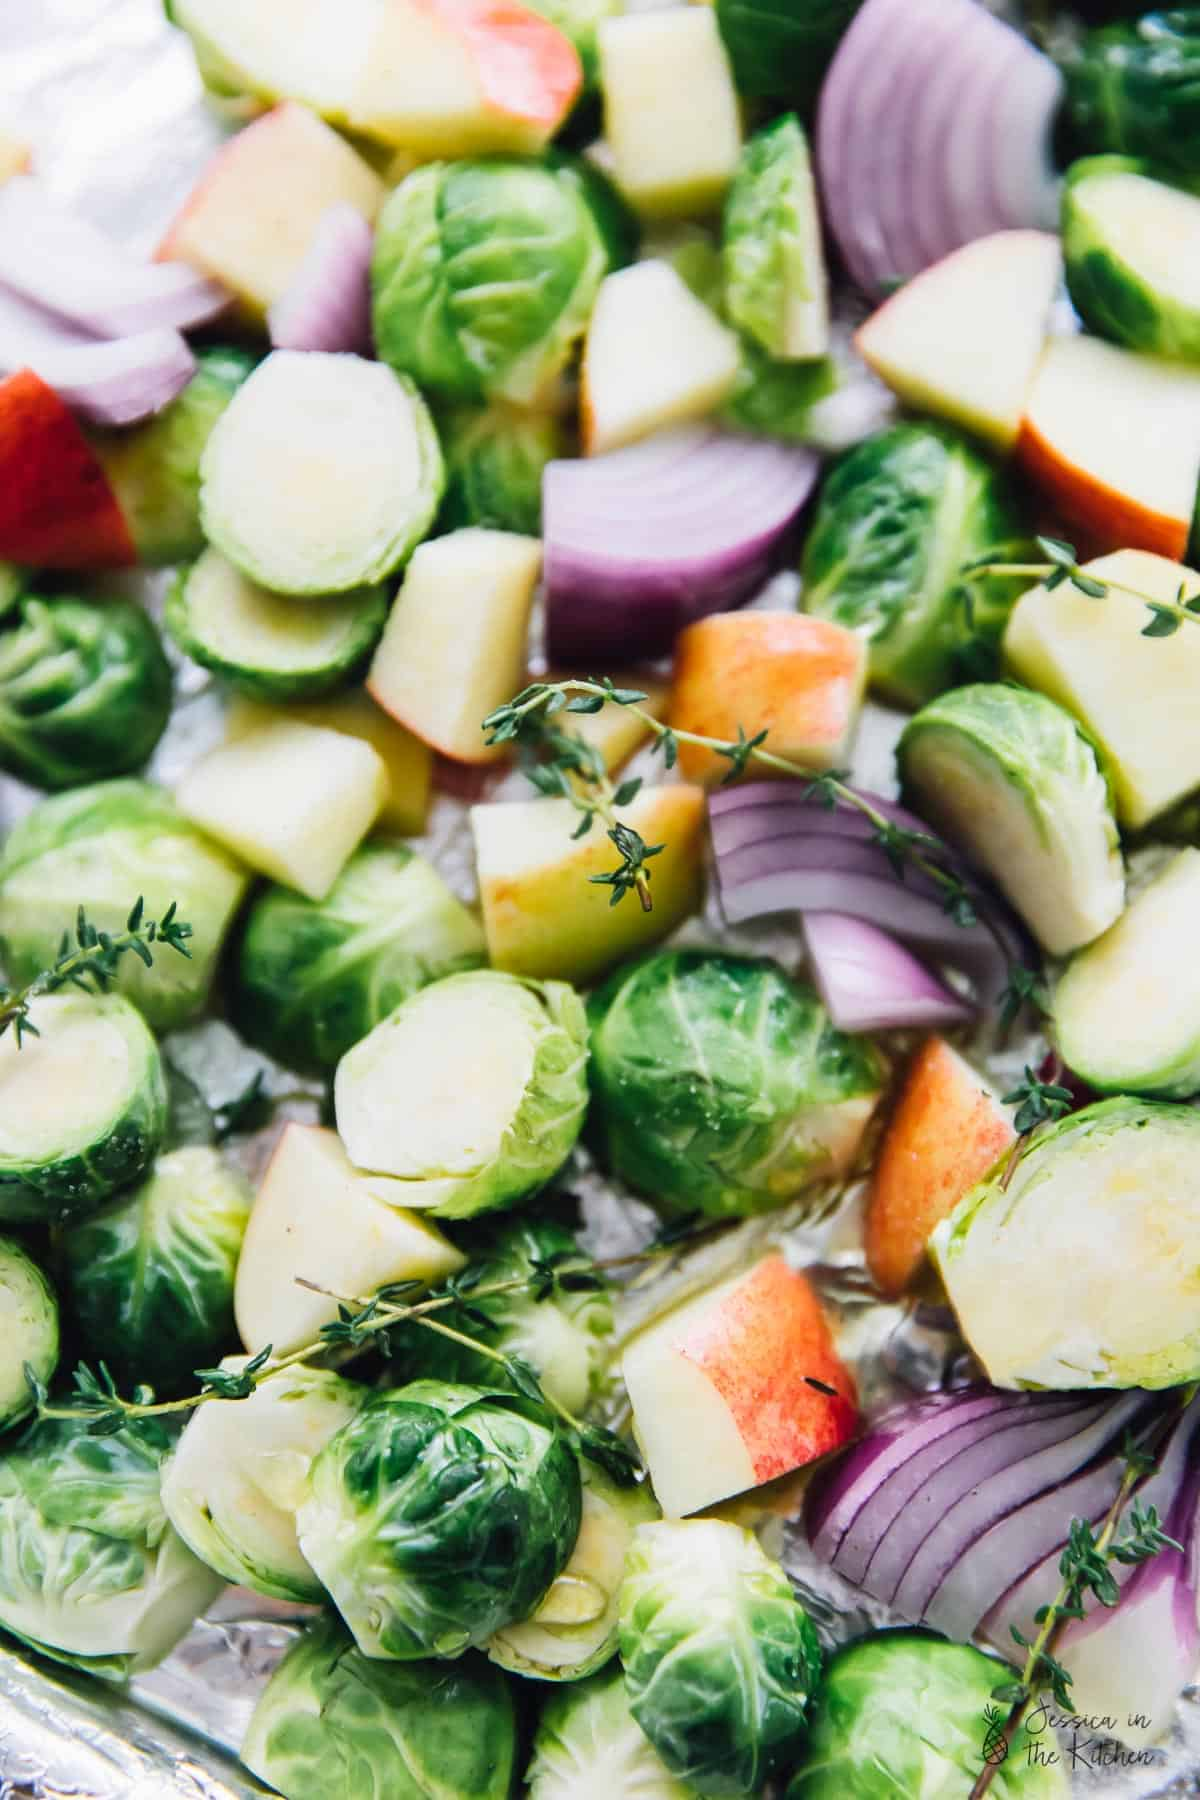 Top down view of brussels sprouts, apples and herbs, before roasting.